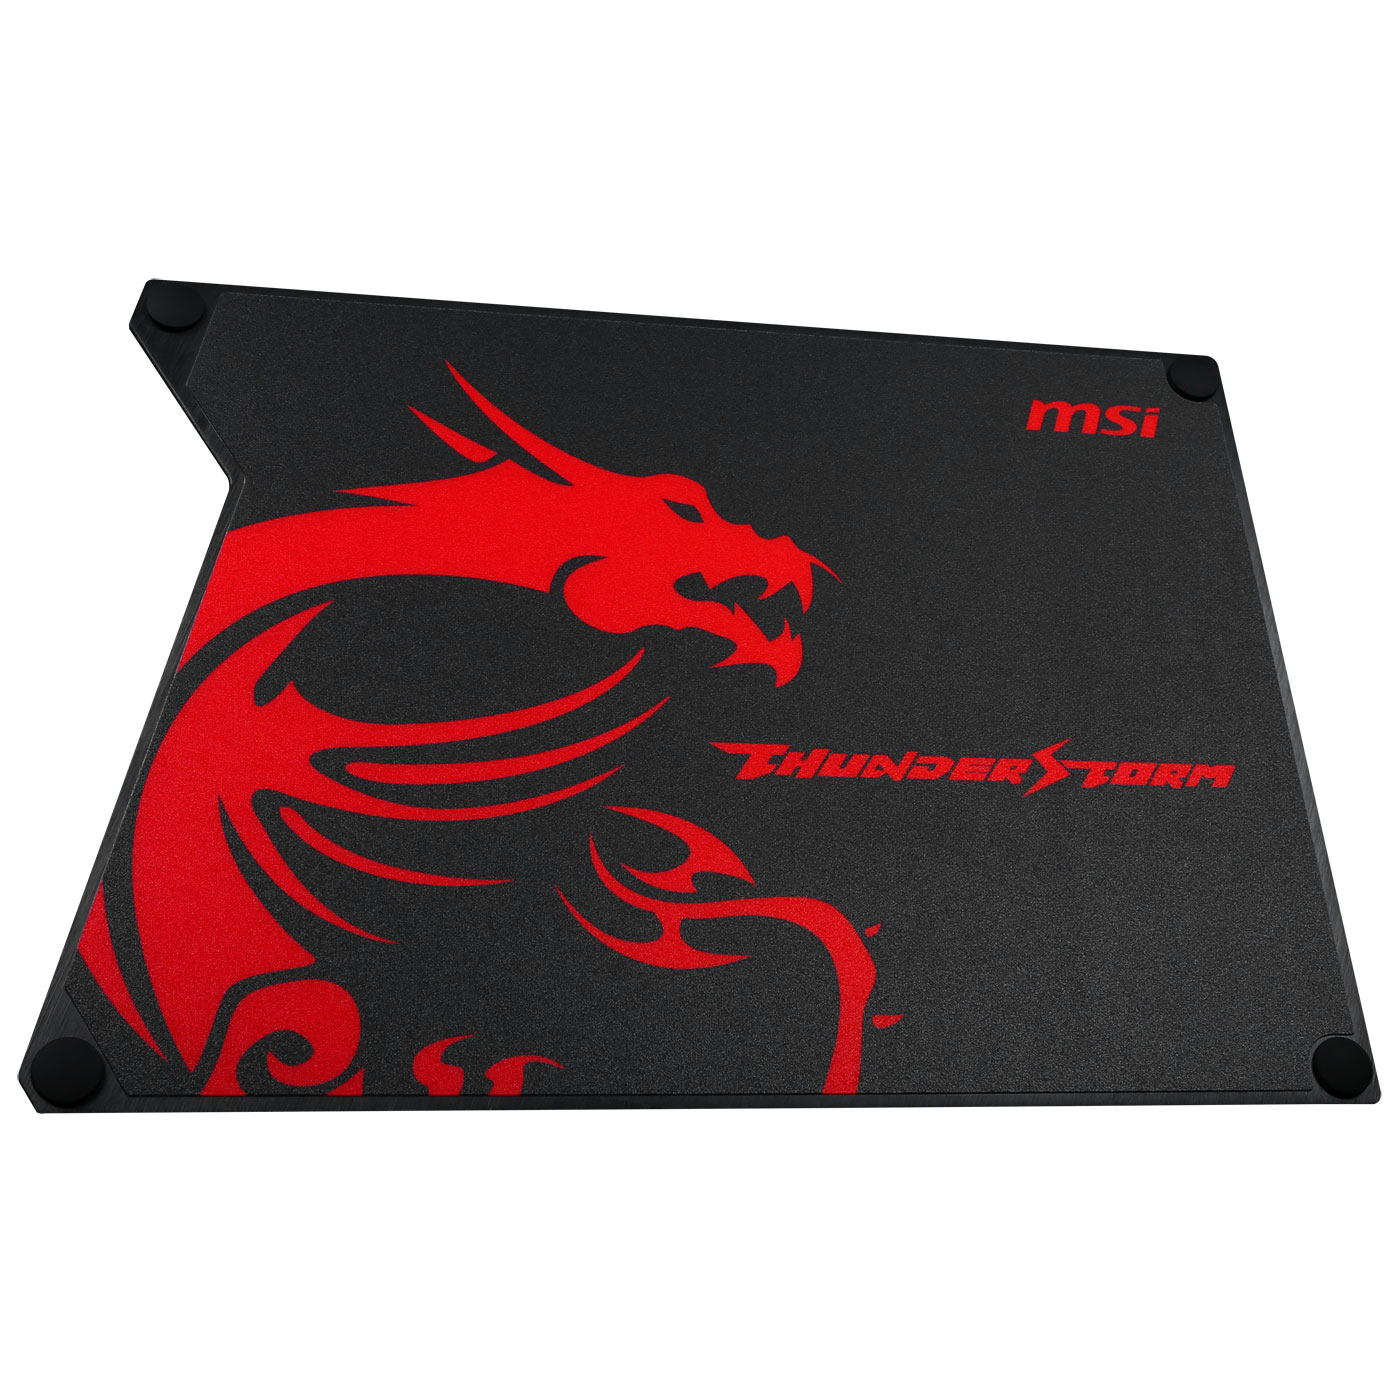 msi thunderstorm tapis de souris gaming rversible rigide surface en aluminium anodis patins en silicone format standard 320 x 225 x 2 mm - Tapis De Souris Gamer